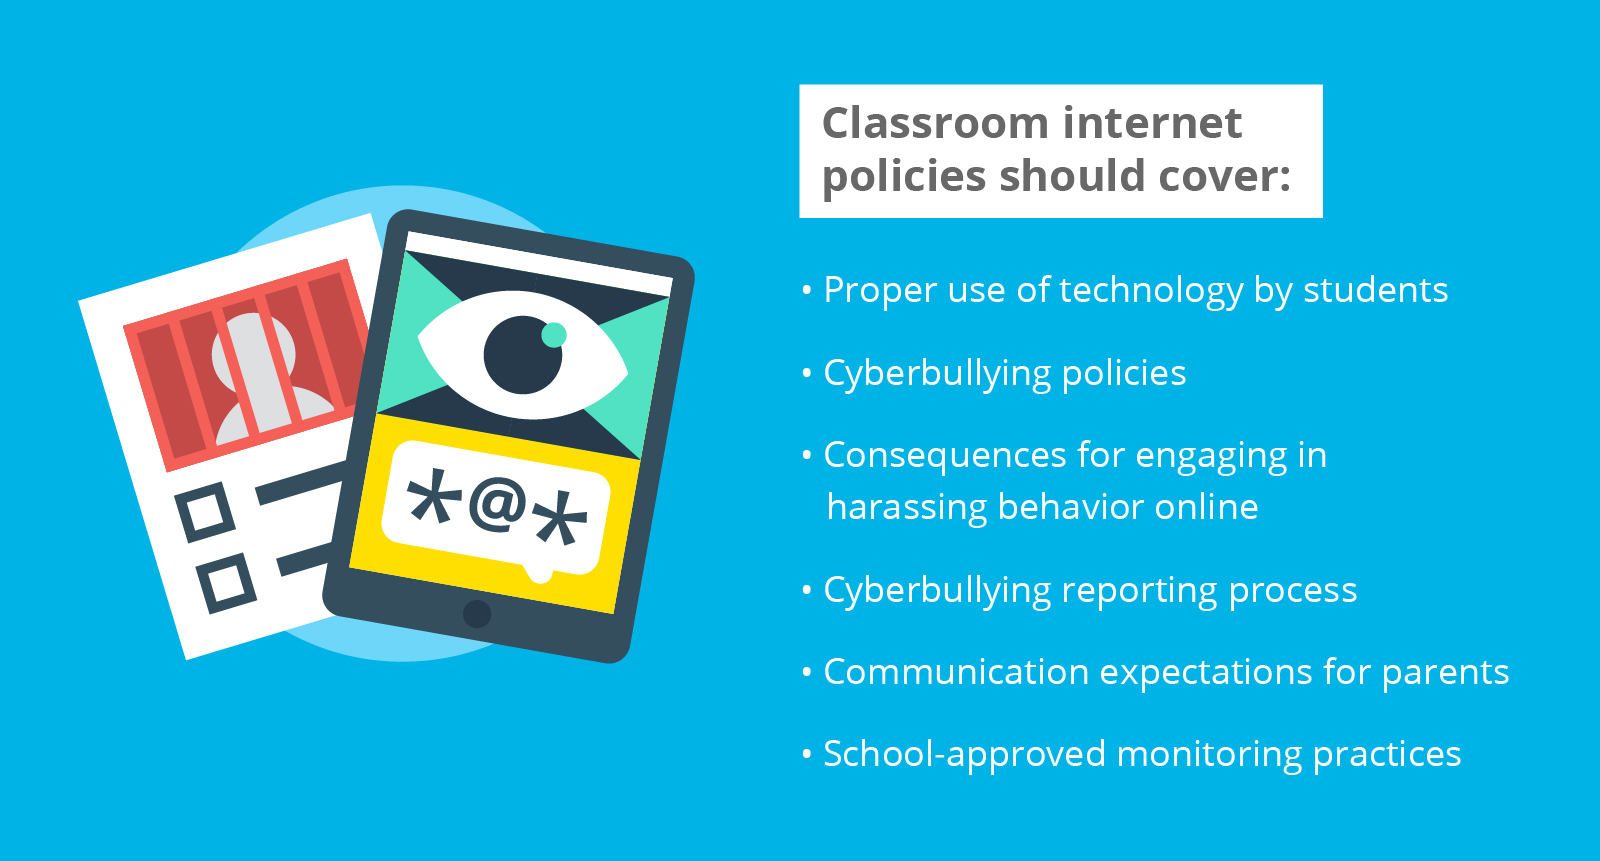 A list of points to be covered by classroom internet policy